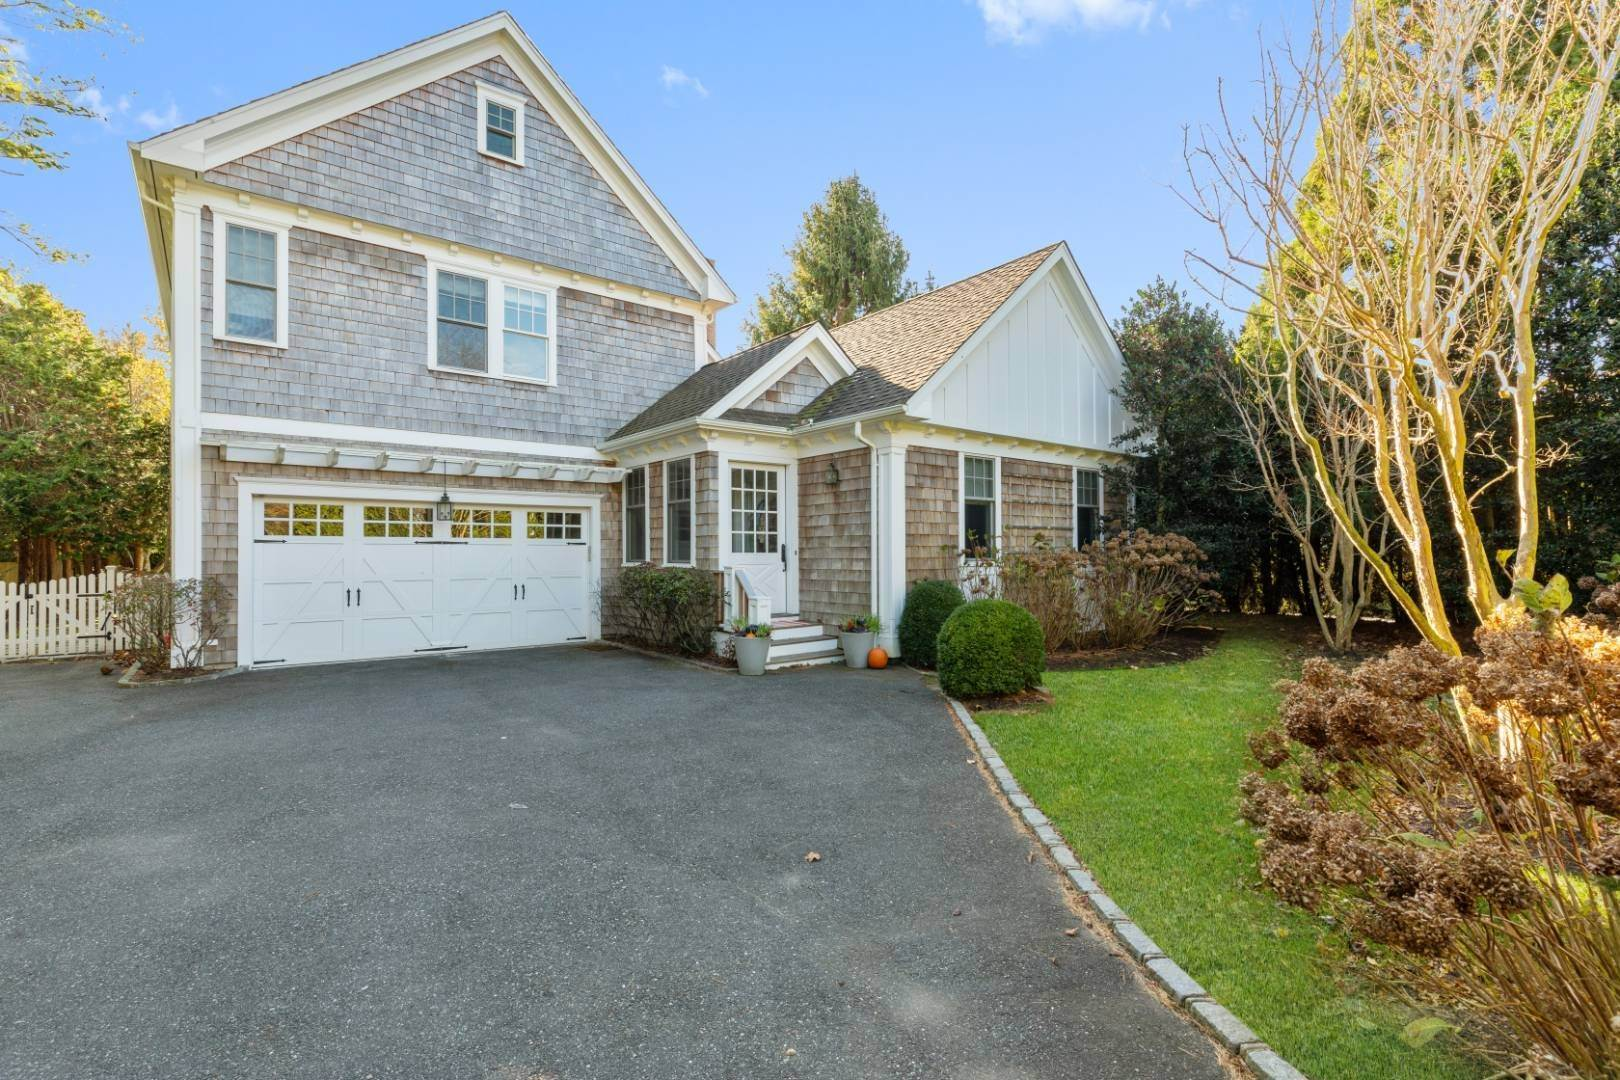 30. Single Family Home at Southampton Village Rental 66 Old Town Crossing, Southampton, NY 11968